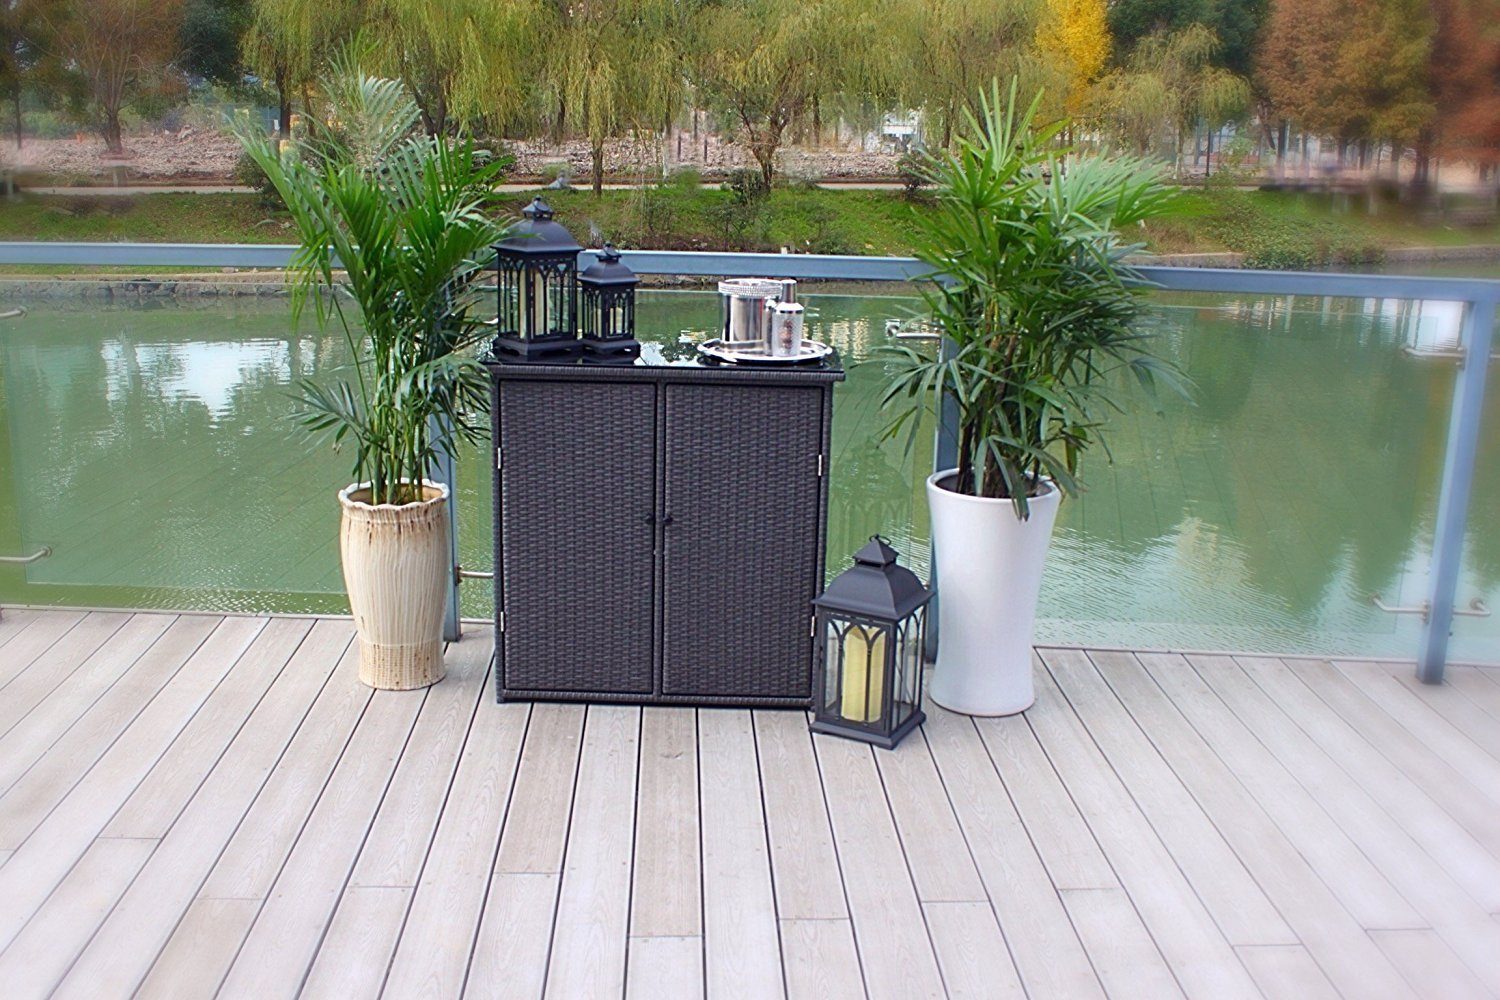 Pebble Lane Living Outdoor Hand Woven UV Resin Wicker and Powder-Coated Aluminum Serving Bar/Buffet Table Unit with Tempered Glass Top - Black by Pebble Lane Living (Image #3)